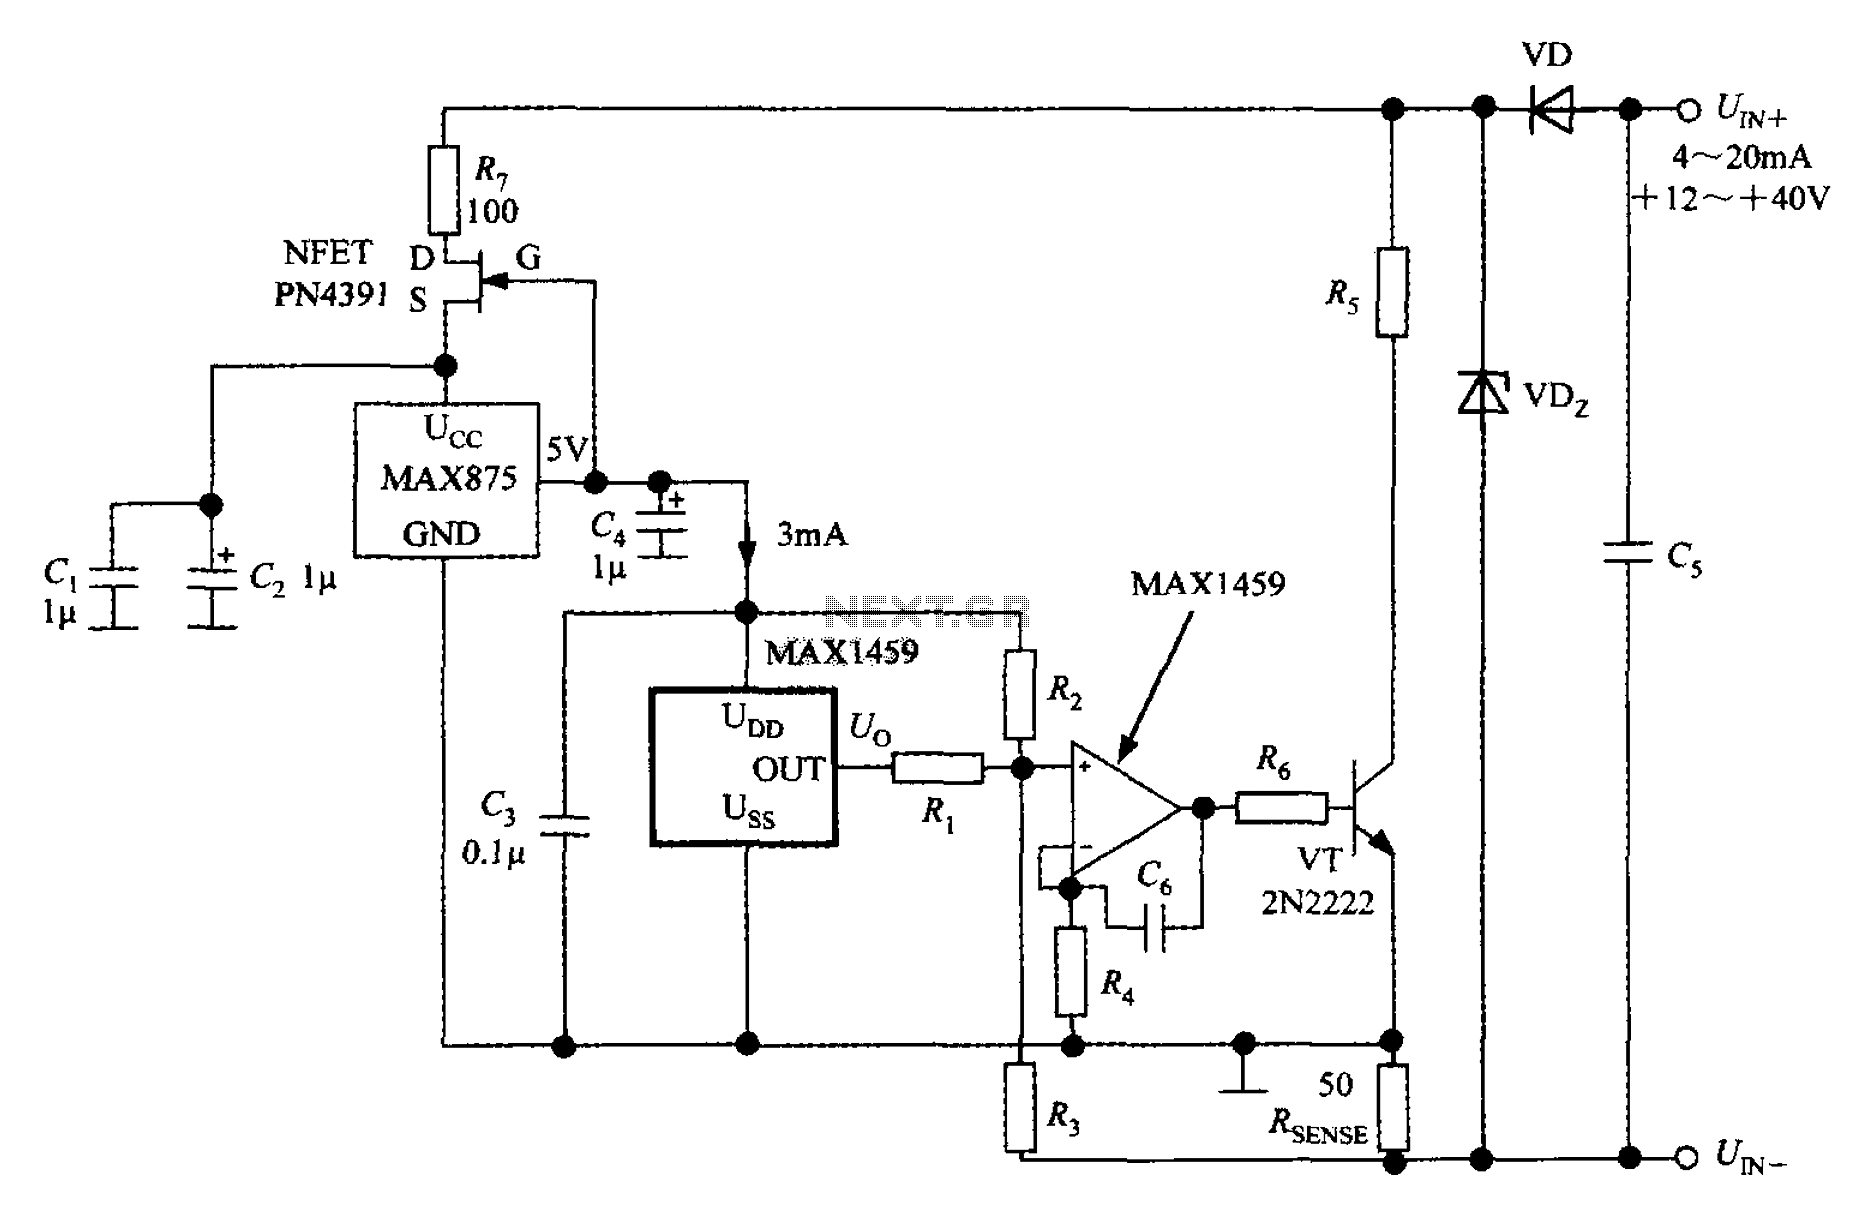 hight resolution of a circuit diagram of the digital pressure signal conditioner max1459 a circuit diagram of the digital